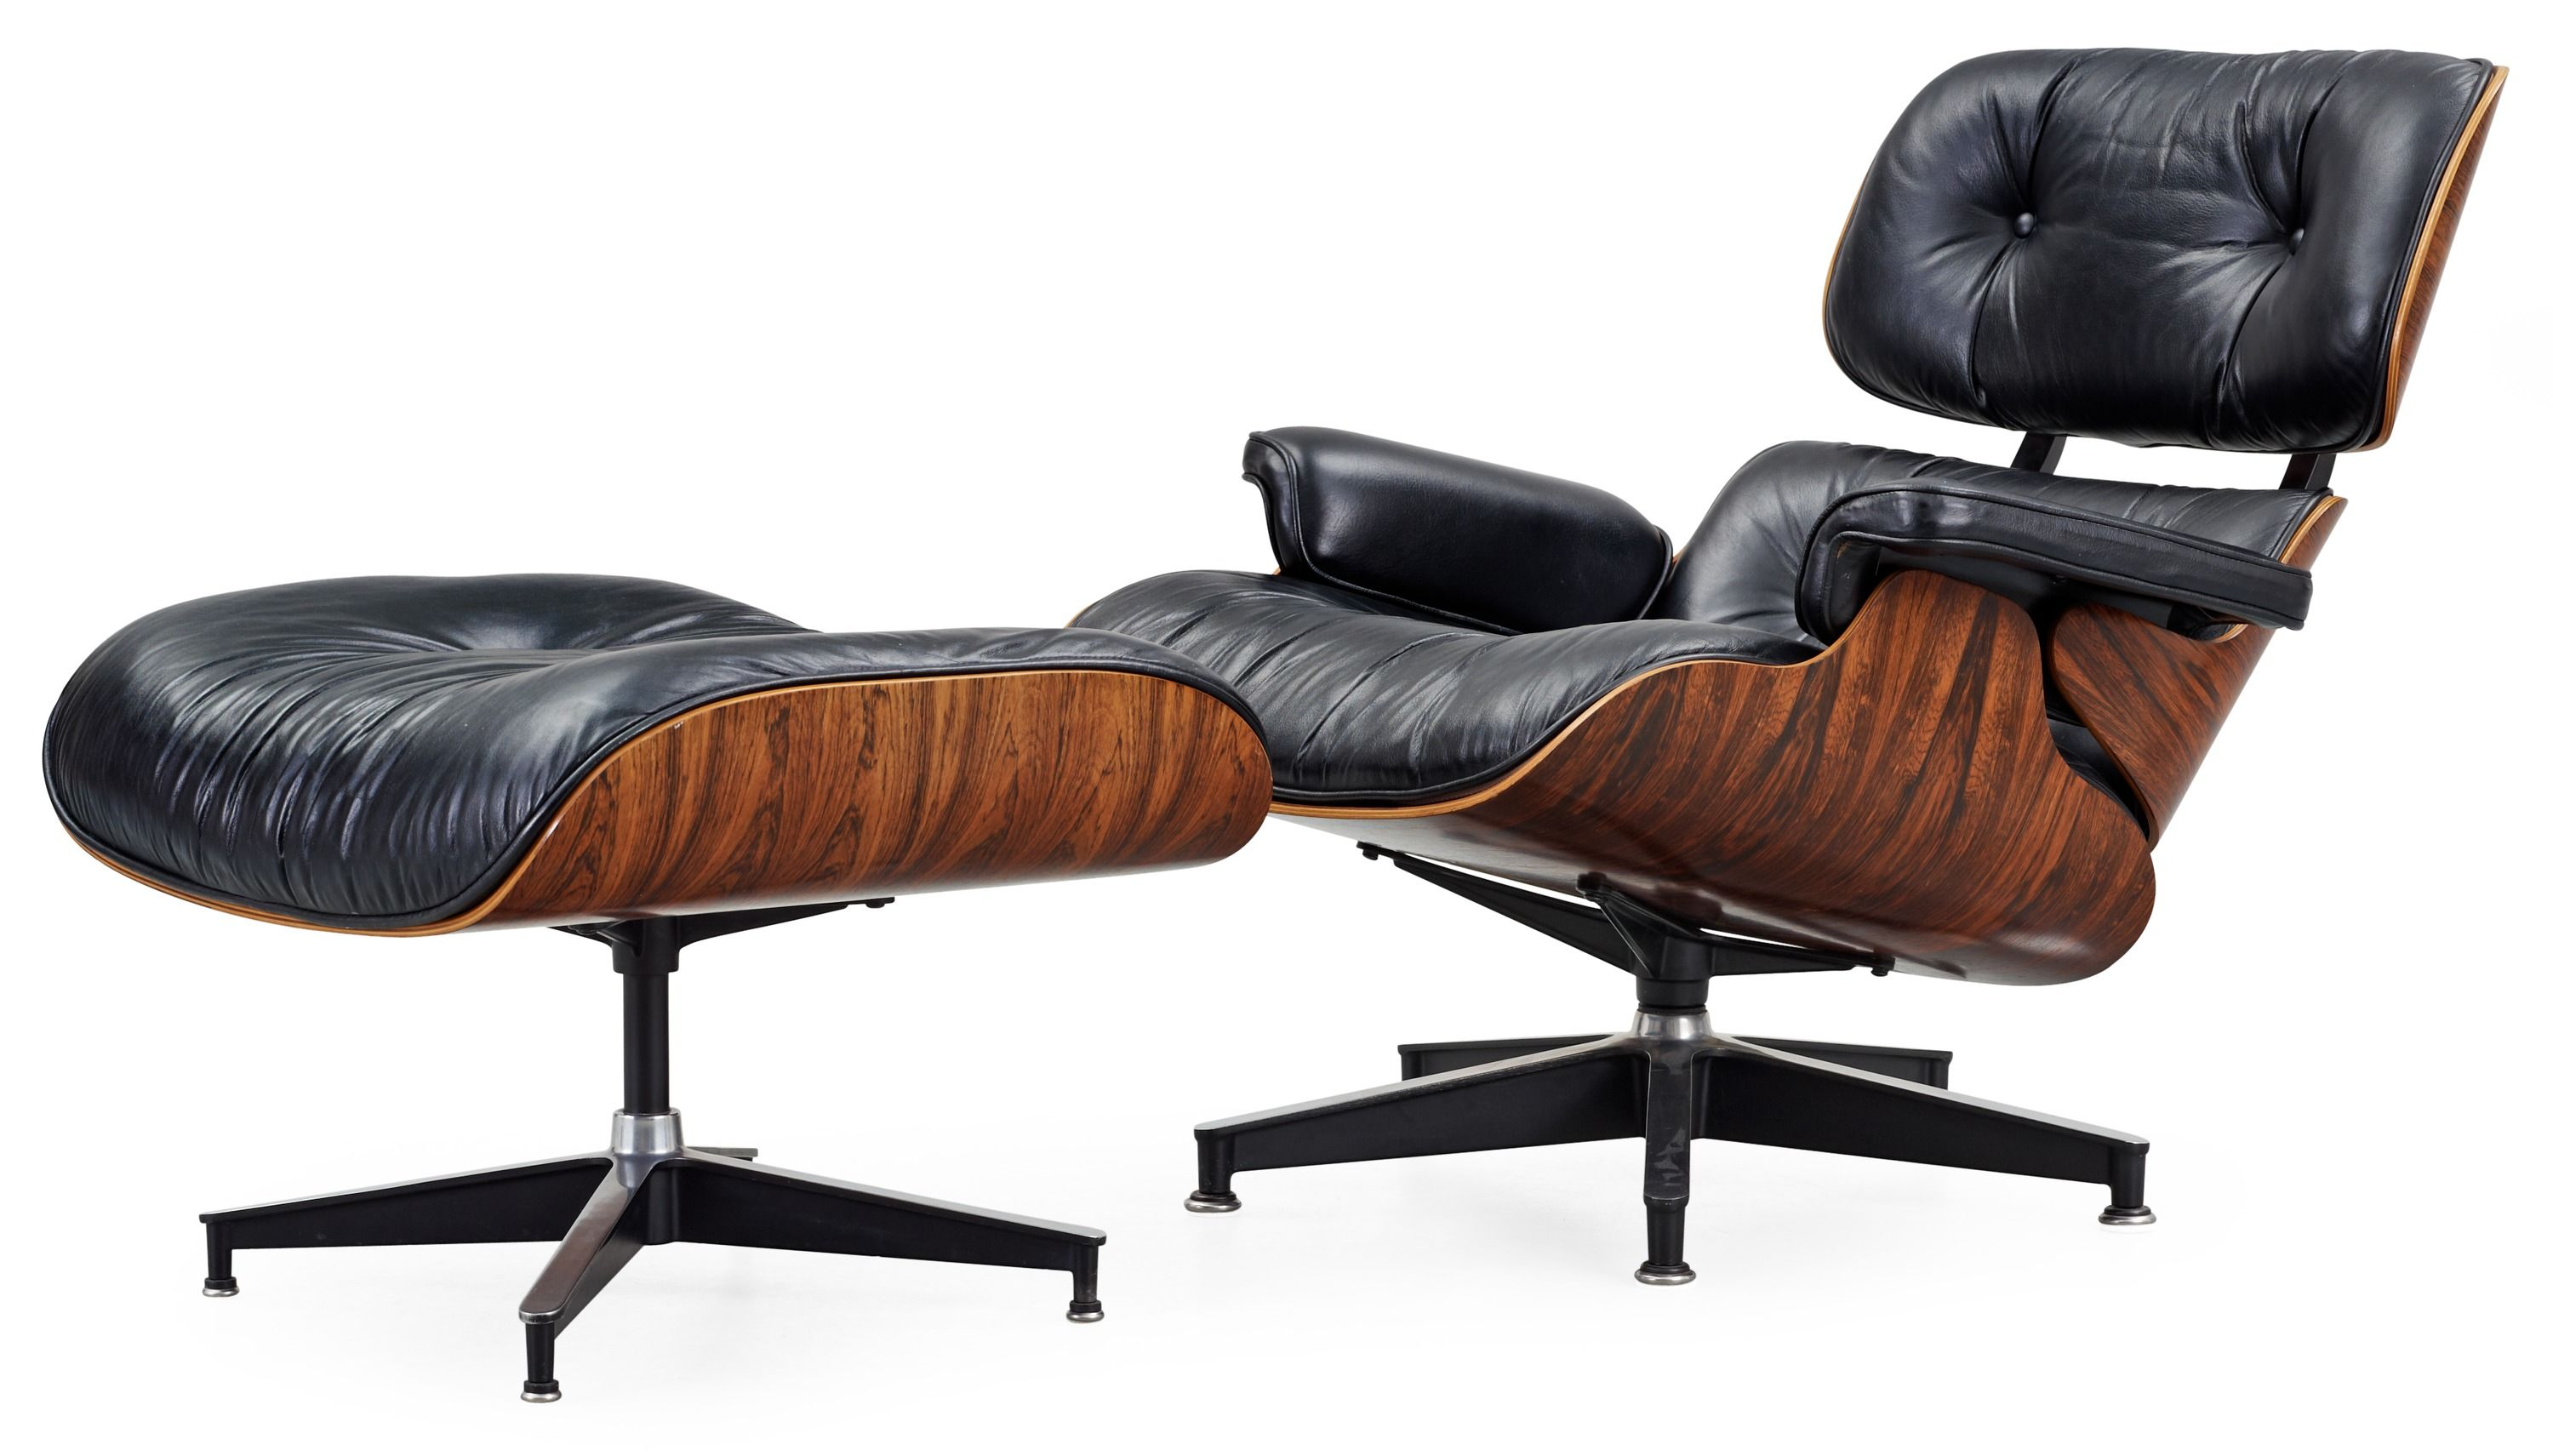 Replica Eames Lounge Chair HK$4,699